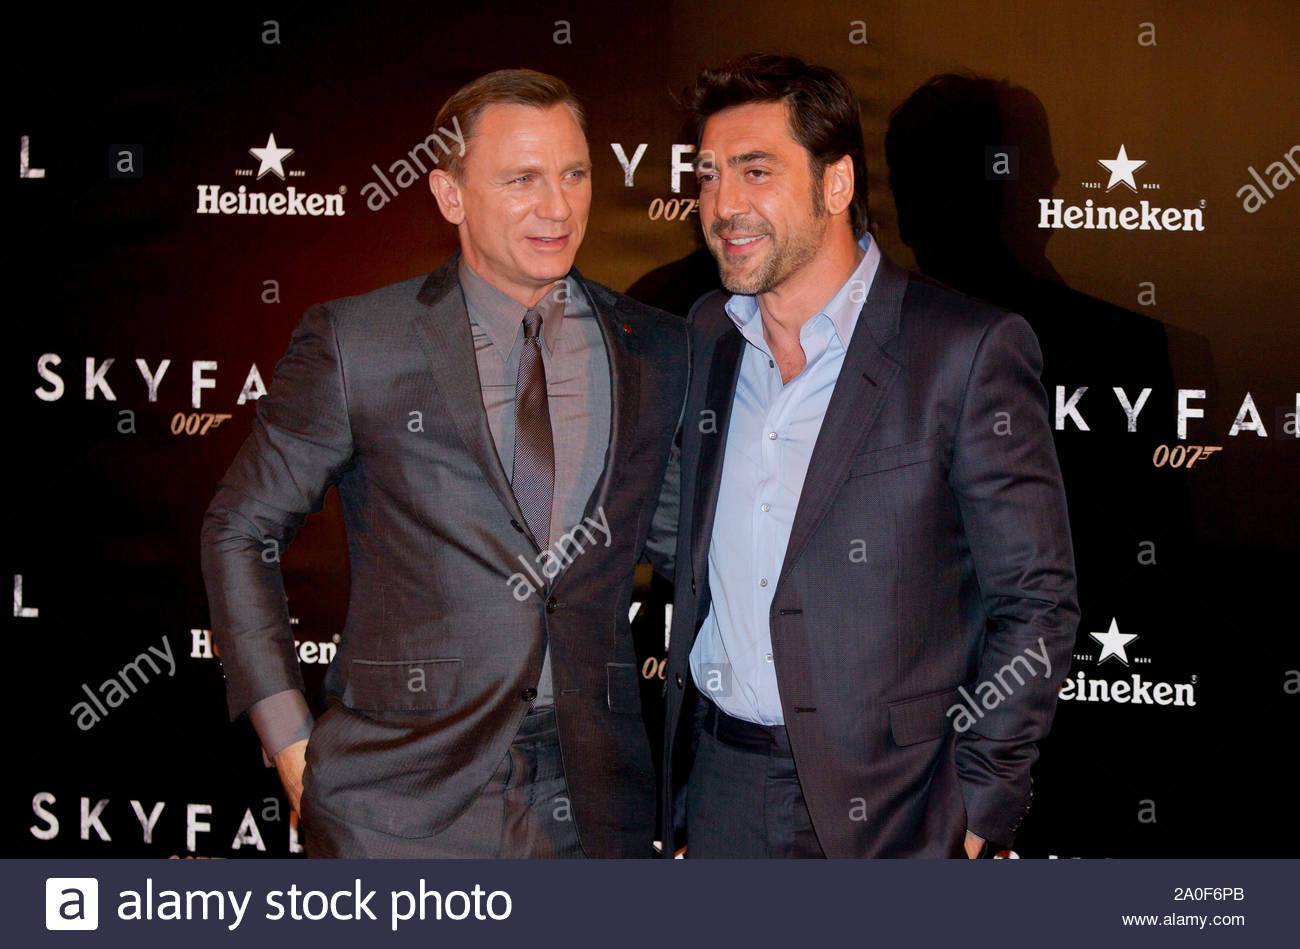 """Madrid, Spain - Actor Daniel Craig and Javier Bardem attend the """"Skyfall"""" premiere held at the Espanol Theater in Madrid, Spain. AKM-GSI October 29, 2012 Stock Photo"""